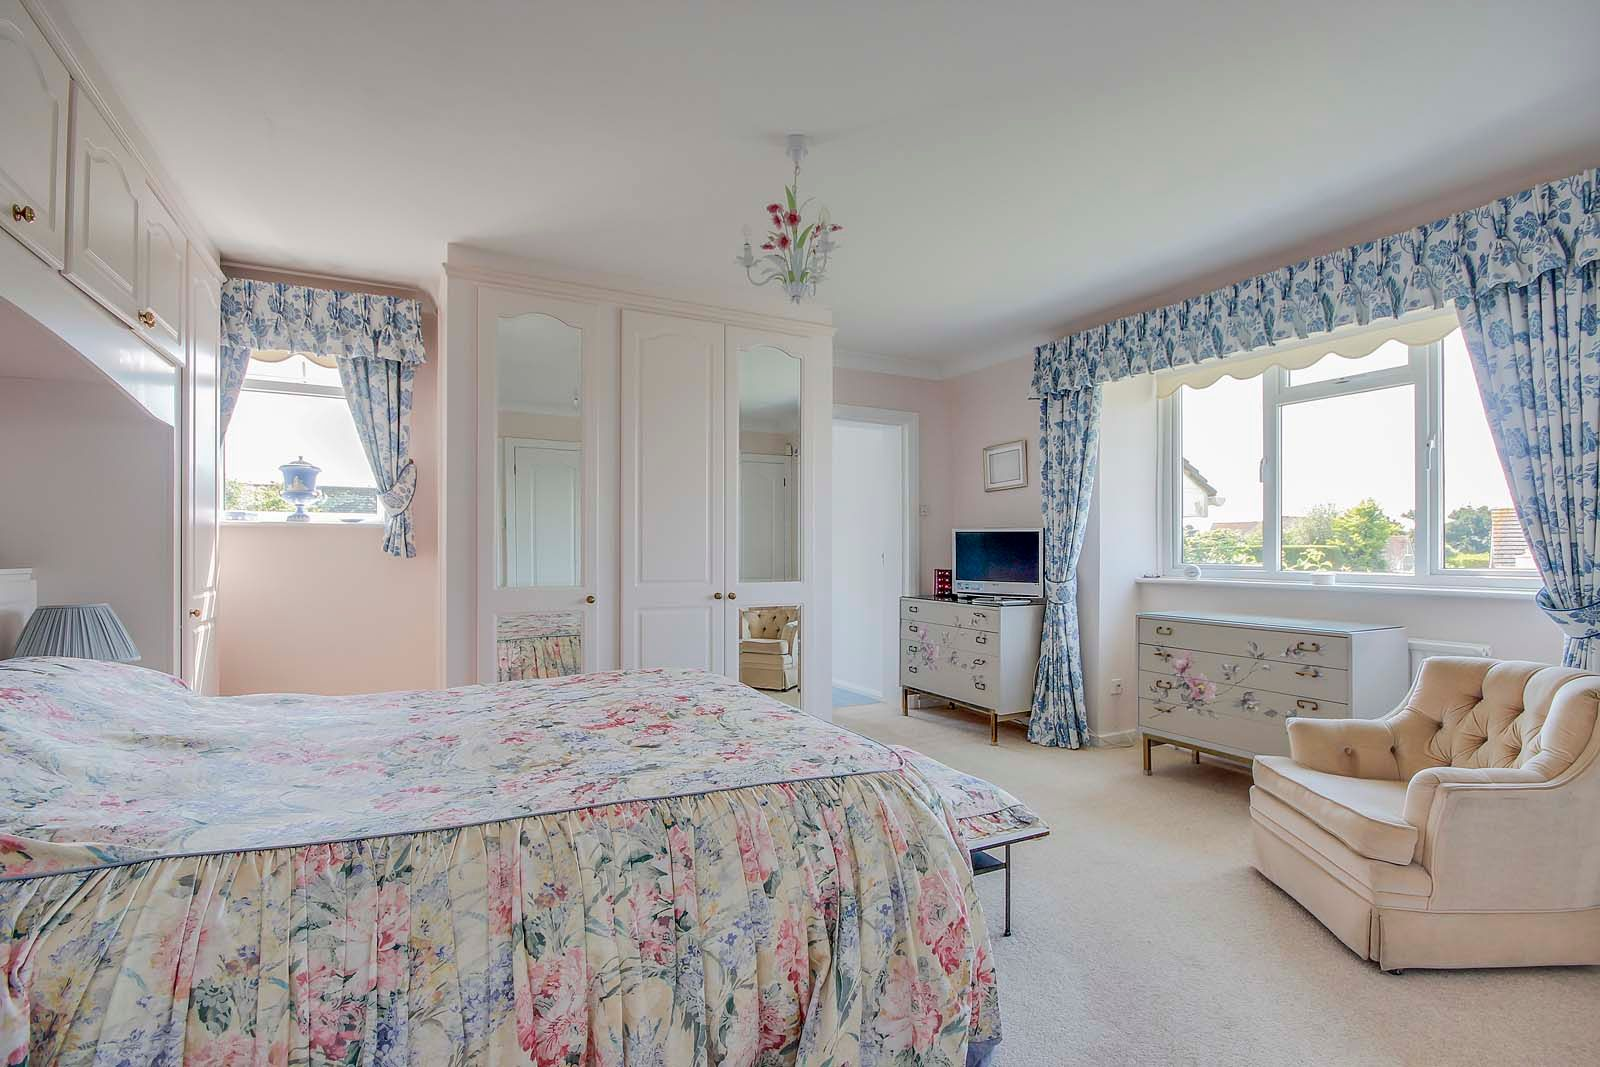 5 bed house for sale in The Ridings COMP 2019 10